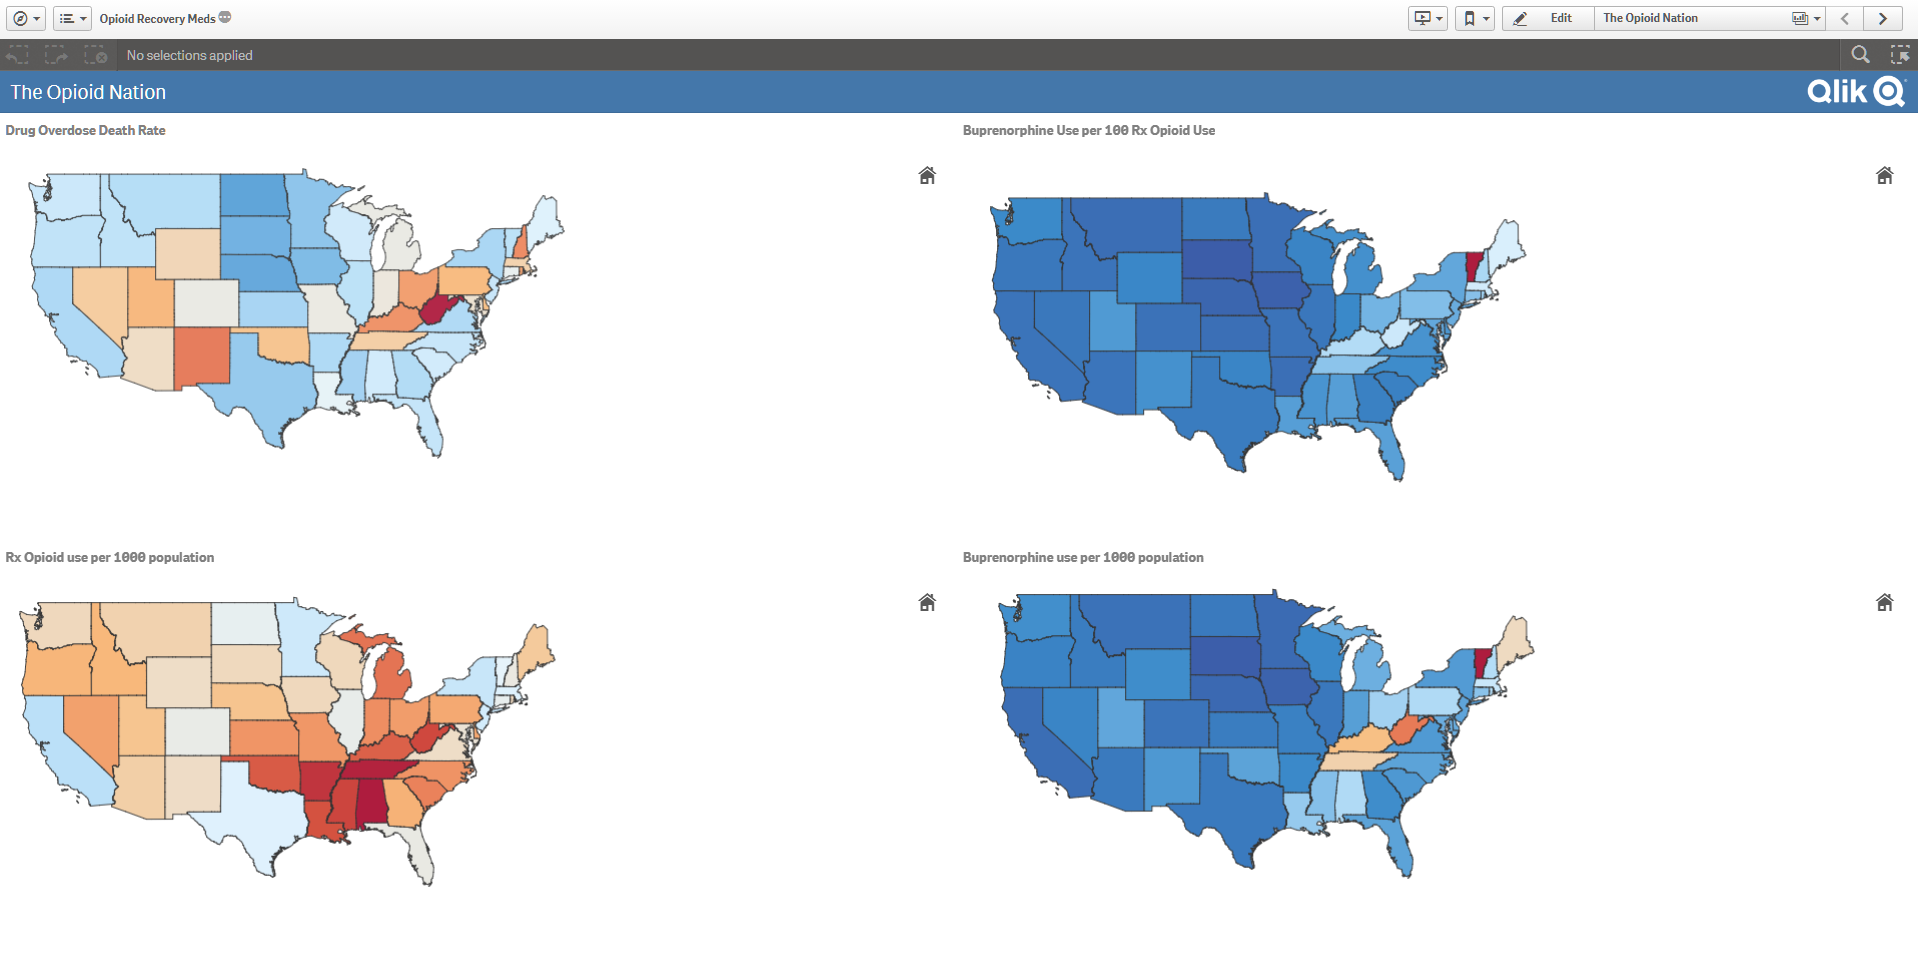 The Opioid Nation Dataviz Using Qlik Sense Visual Analytics